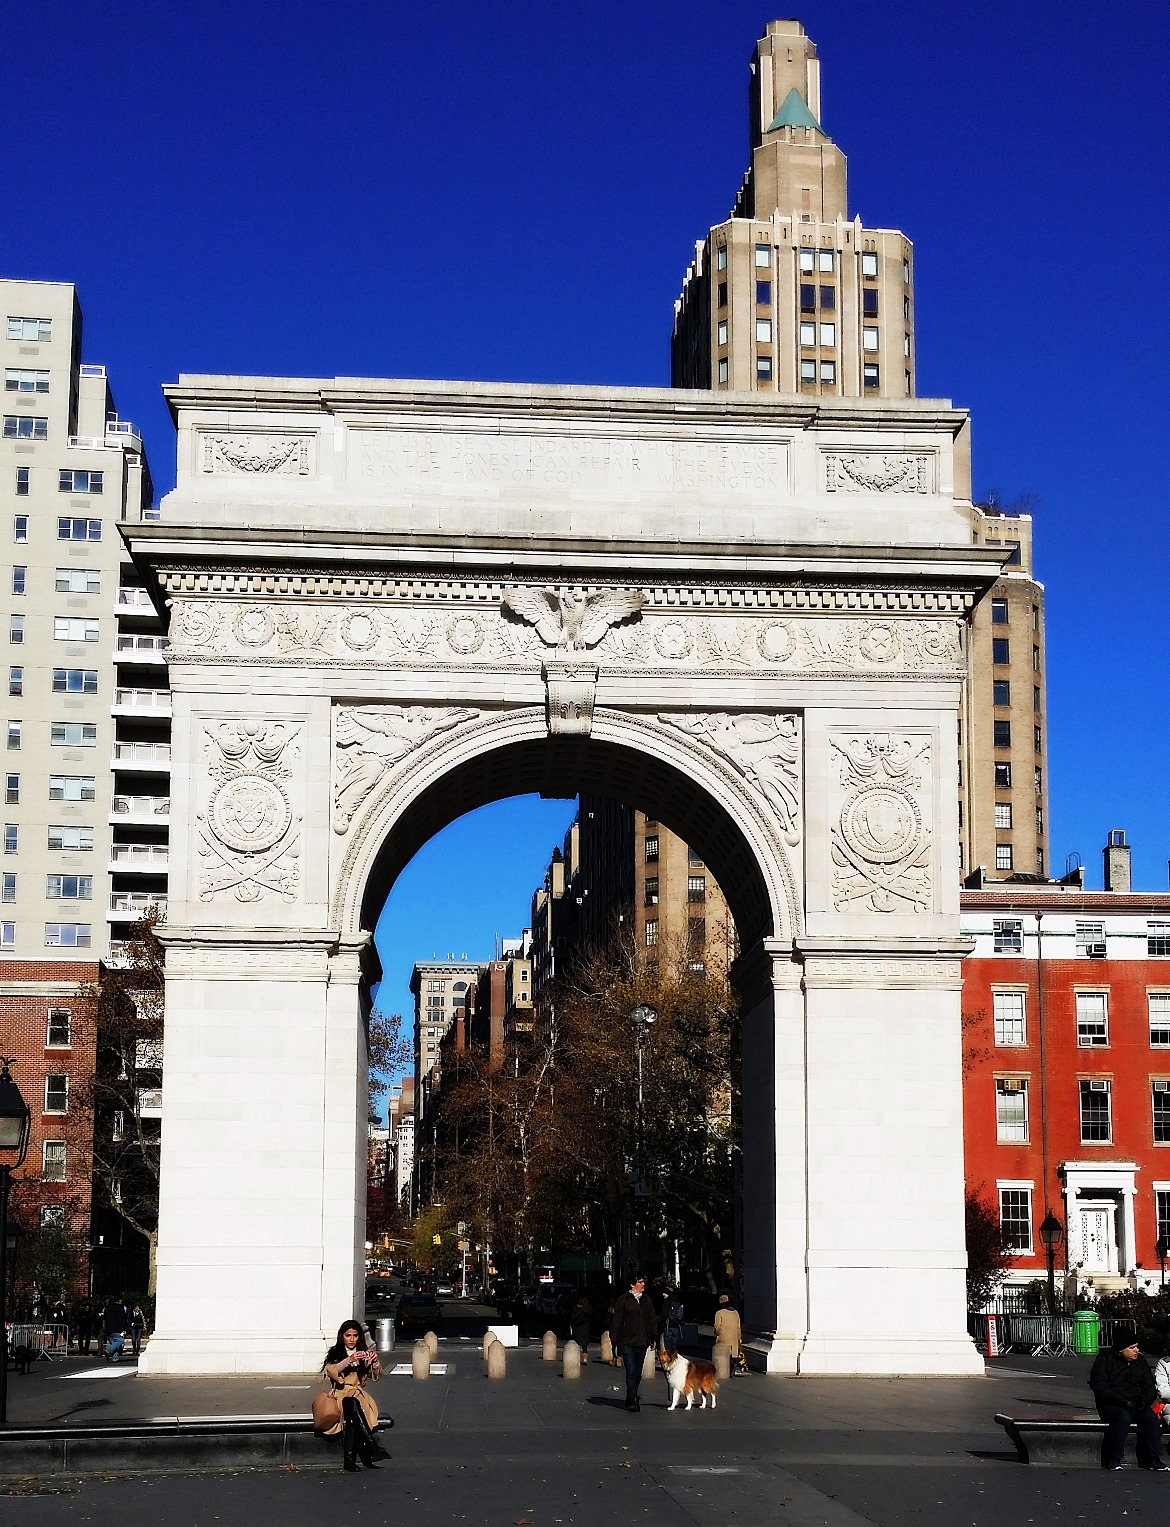 Washington Square Park - New York New York, travel blog by BeckyBecky Blogs